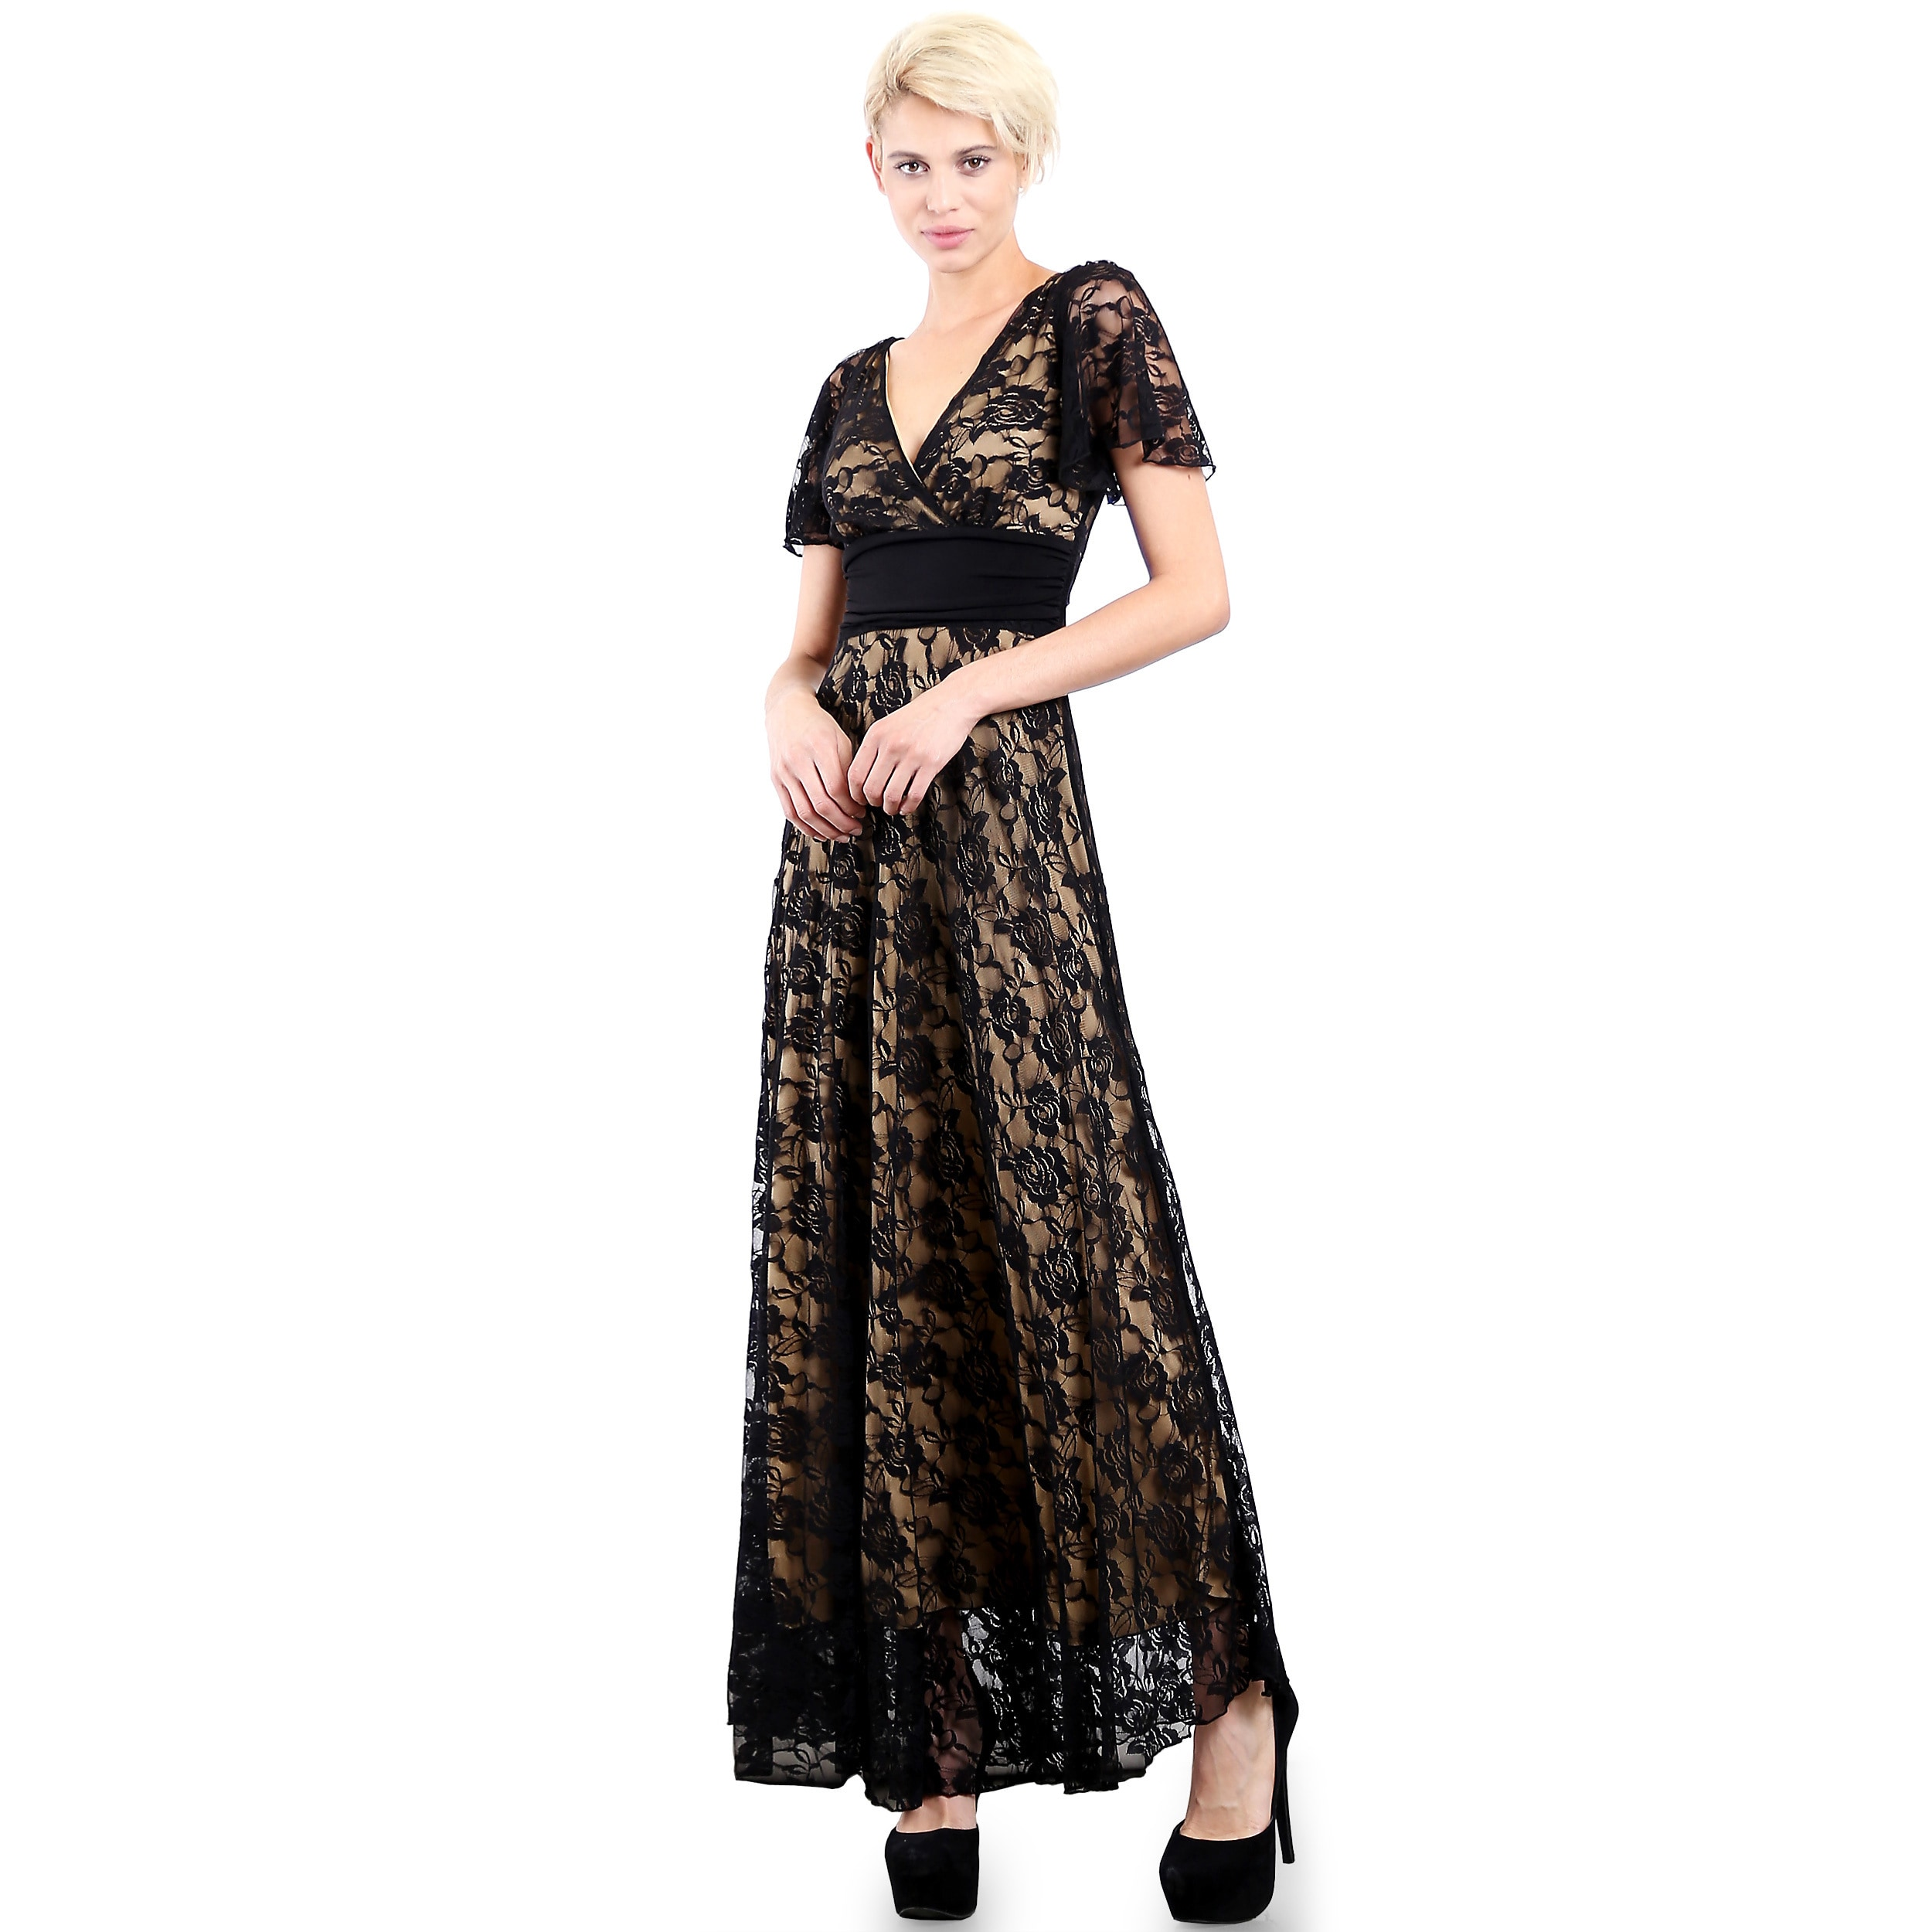 ef6808738a2 Shop Evanese Women s Elegant Lace Evening Party Formal Long Dress Gown with  Empire Waist Full Skirt and Short Sleeves - Free Shipping Today - Overstock  - ...